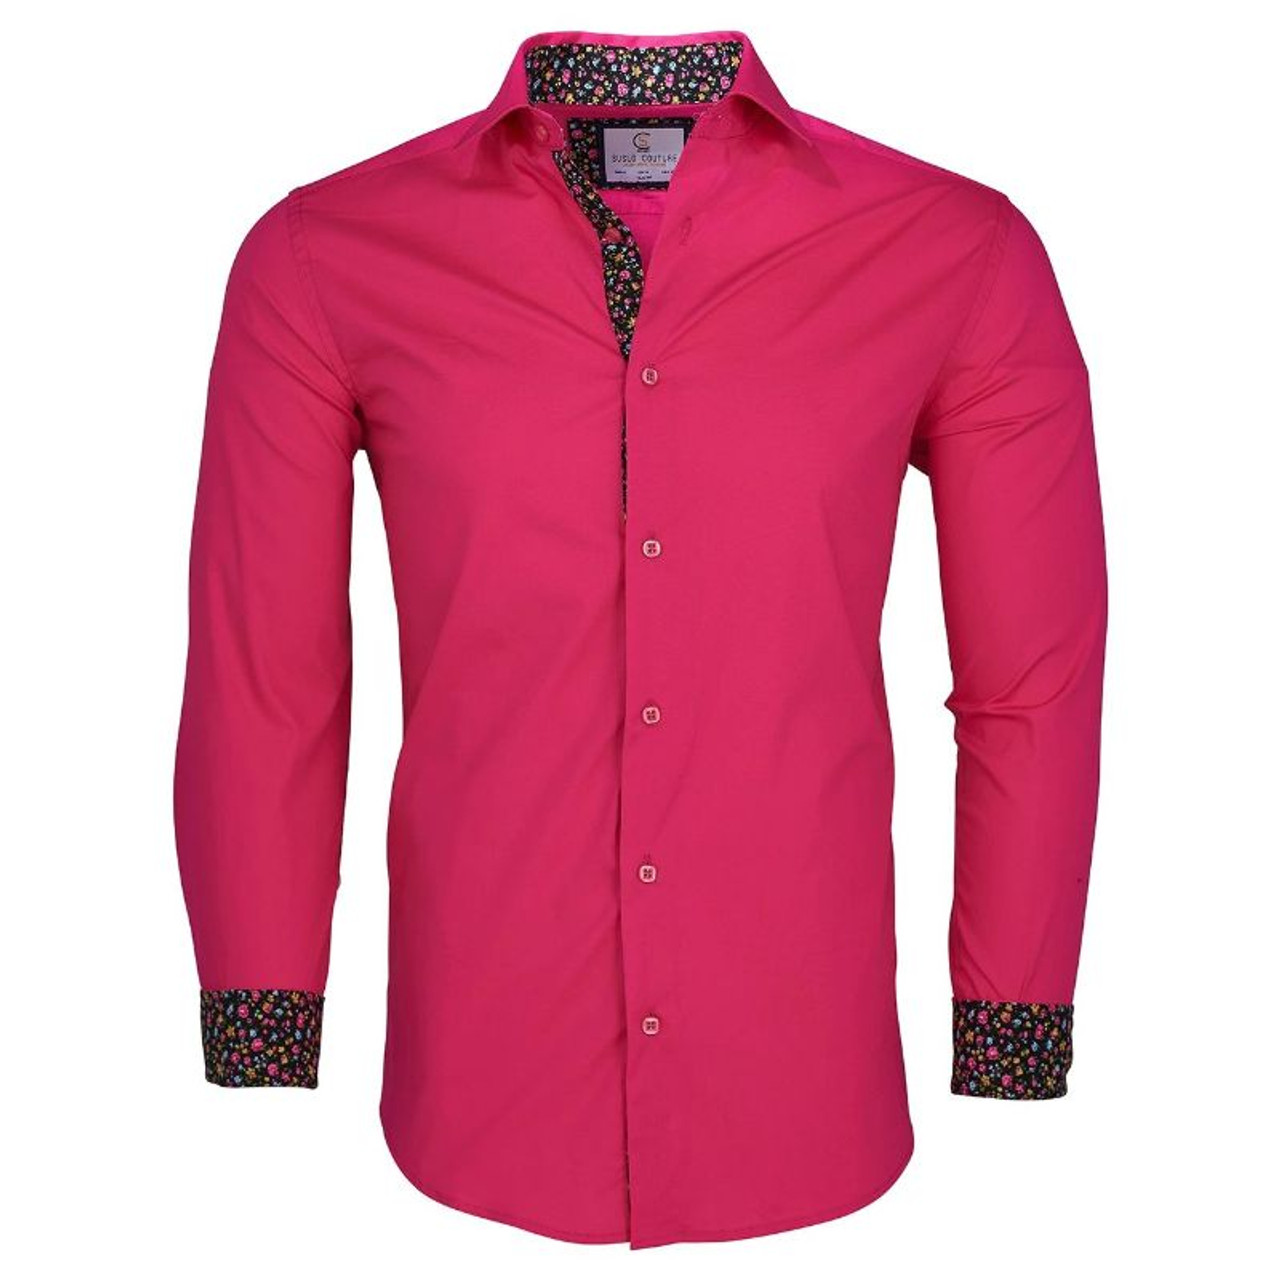 Suslo Couture Men's Slim Fit Solid Casual Button Down Shirt